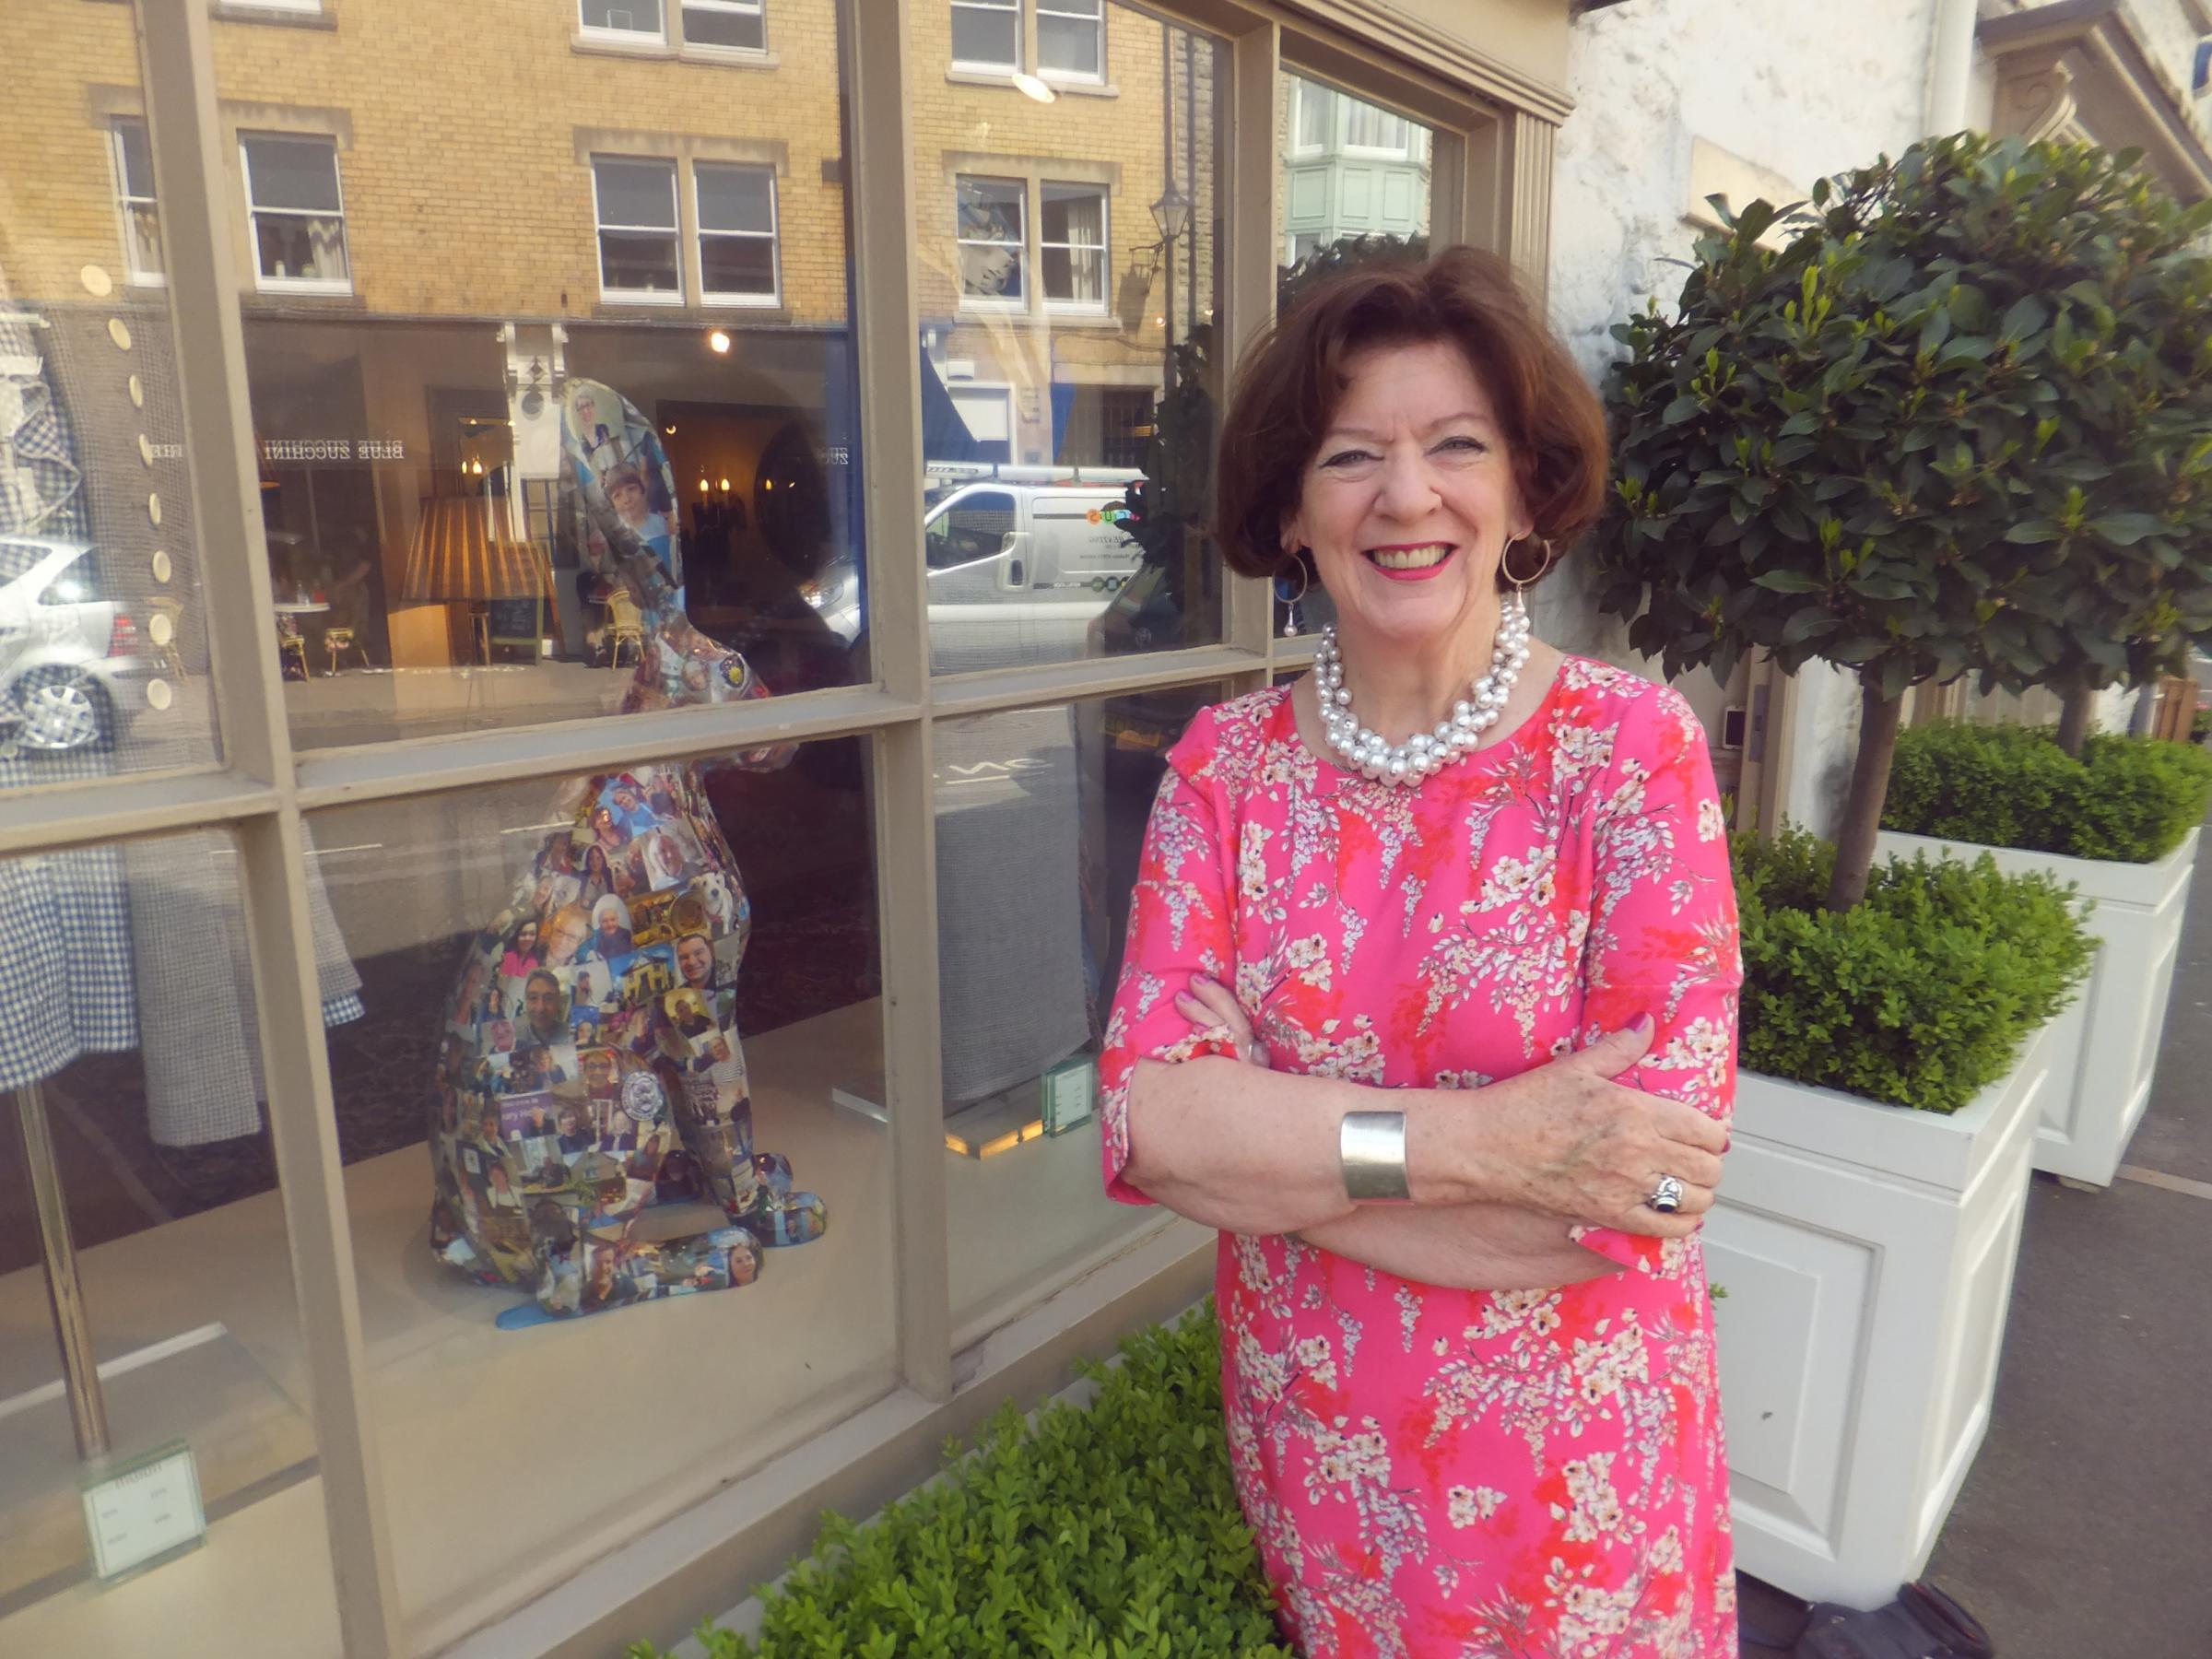 Lesley Brain with Tetters the Tetbury hare